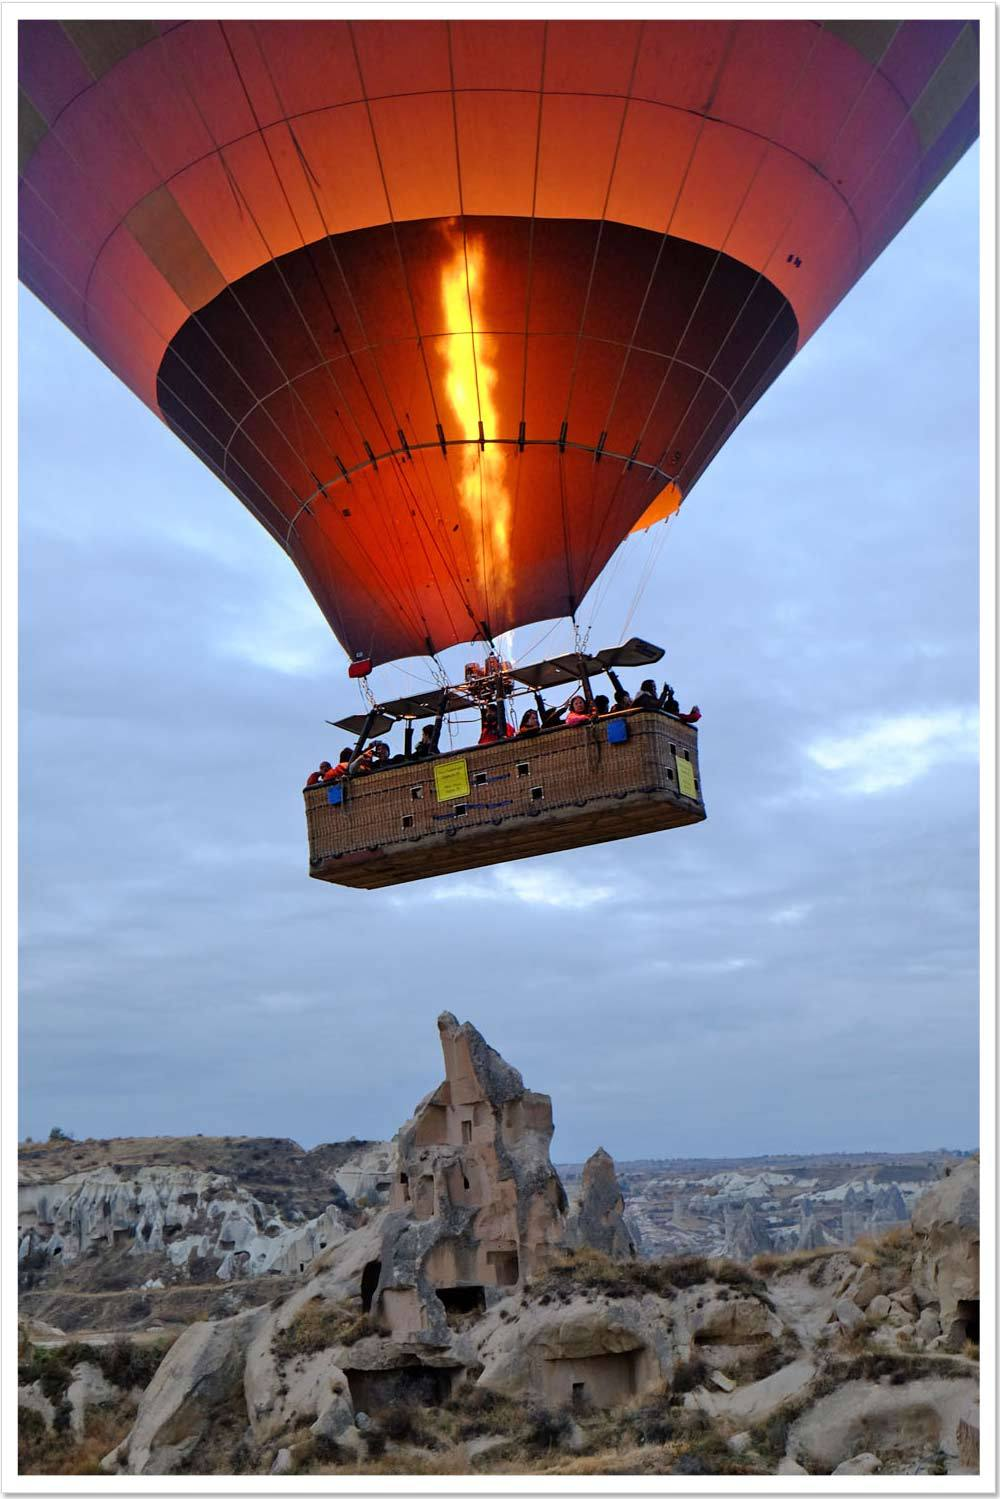 I rode a hot air balloon in Turkey.